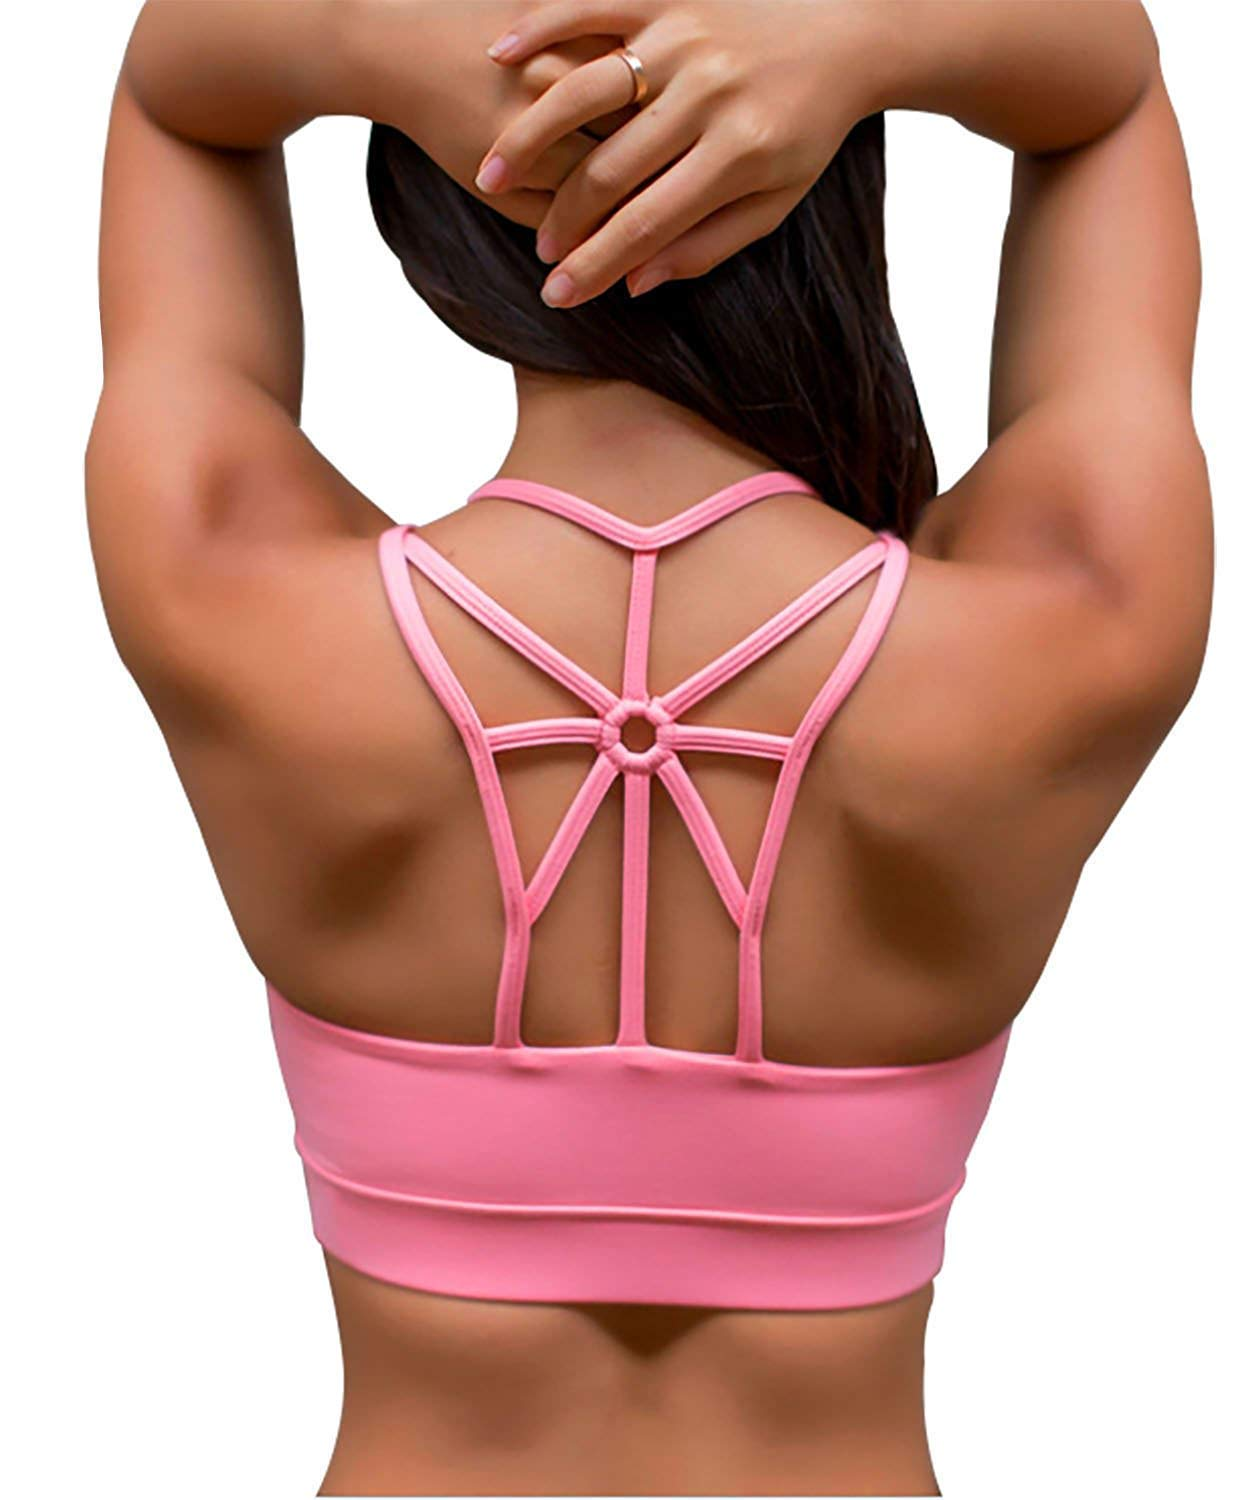 SHAPERX Women's Sports Bra Padded Mid Impact Support Strappy Criss Cross Back Running Workout Yoga Bras Pink, SZ139-Pink-S